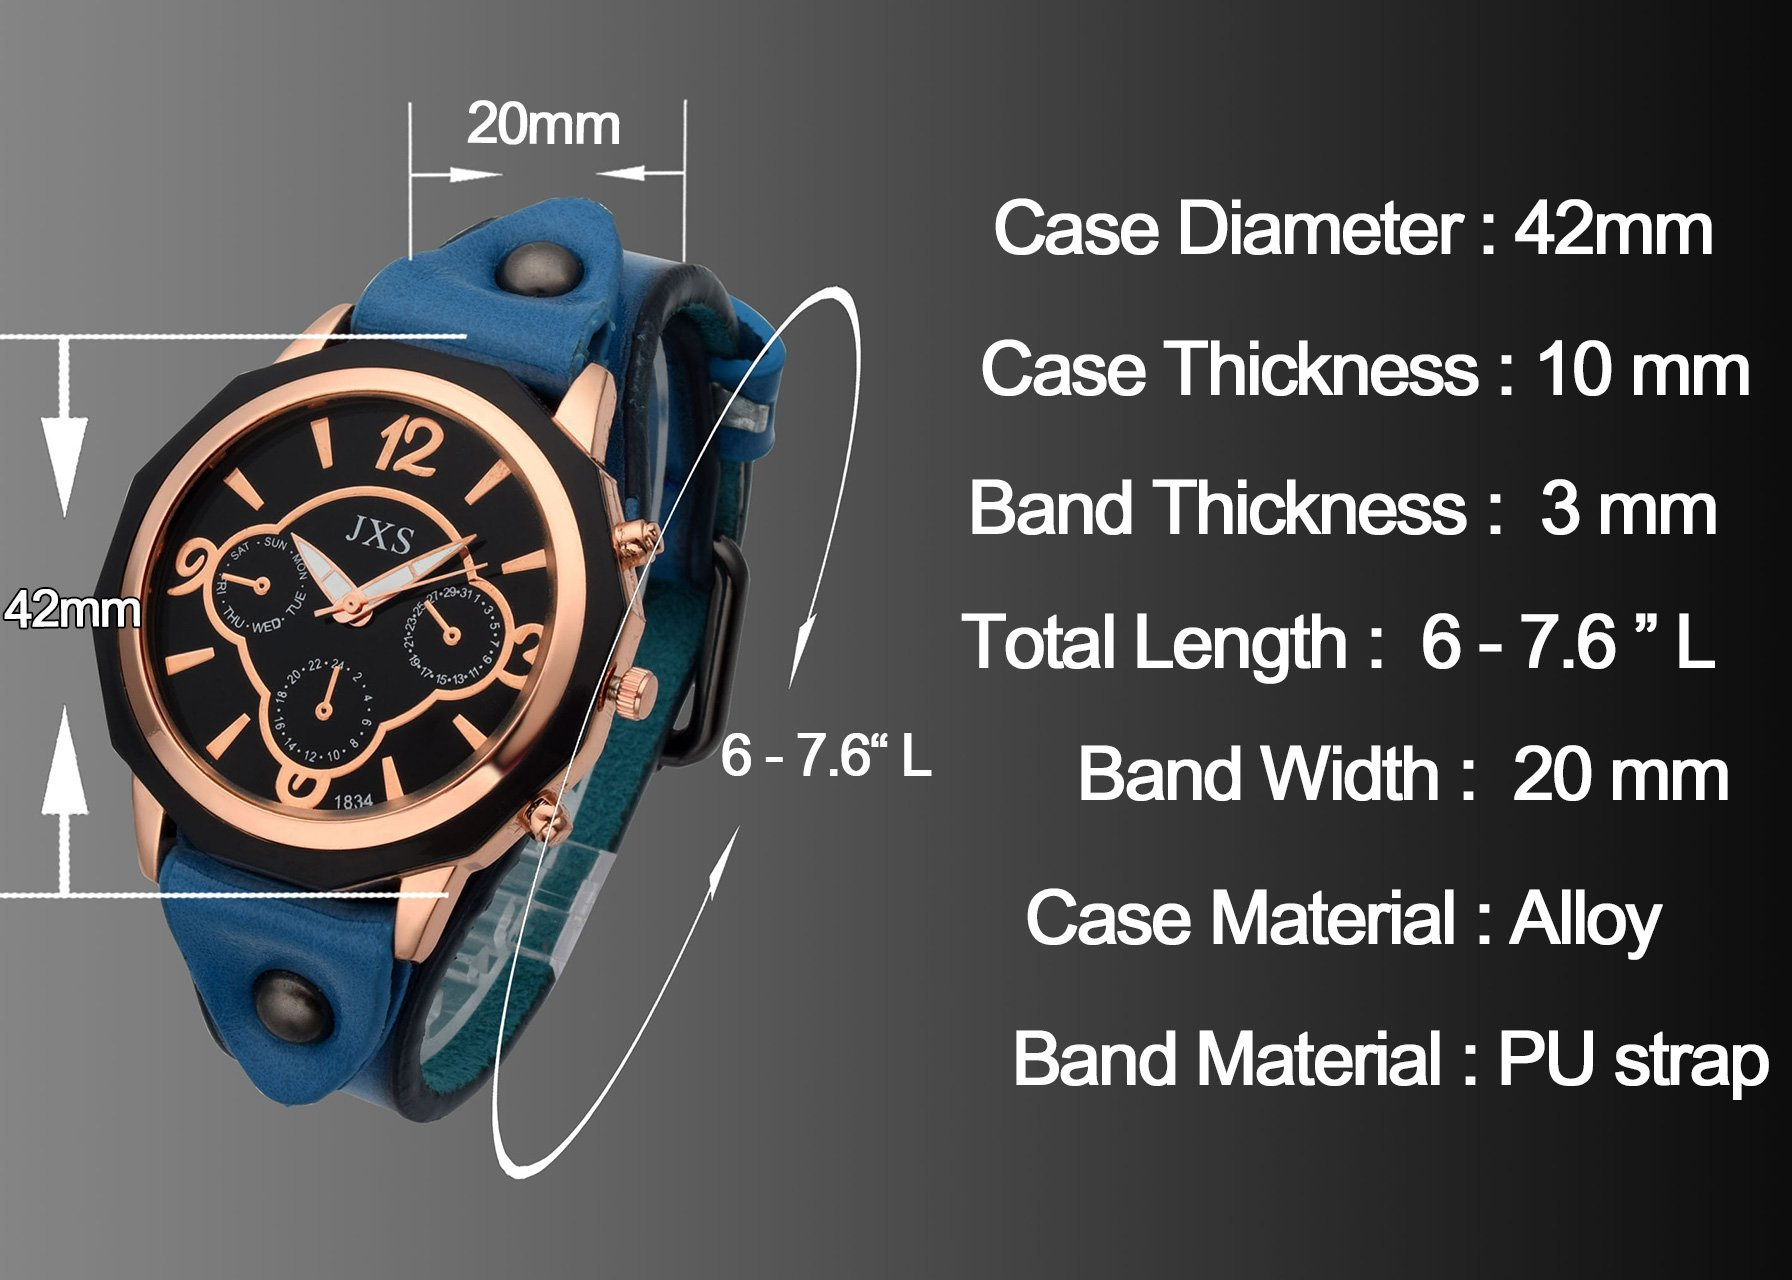 Top Plaza Womens Mens Fashion Rose Gold Tone Leather Analog Quartz Wrist Watch Arabic Numerals Big Face Casual Sport Watch - Black by Top Plaza (Image #3)